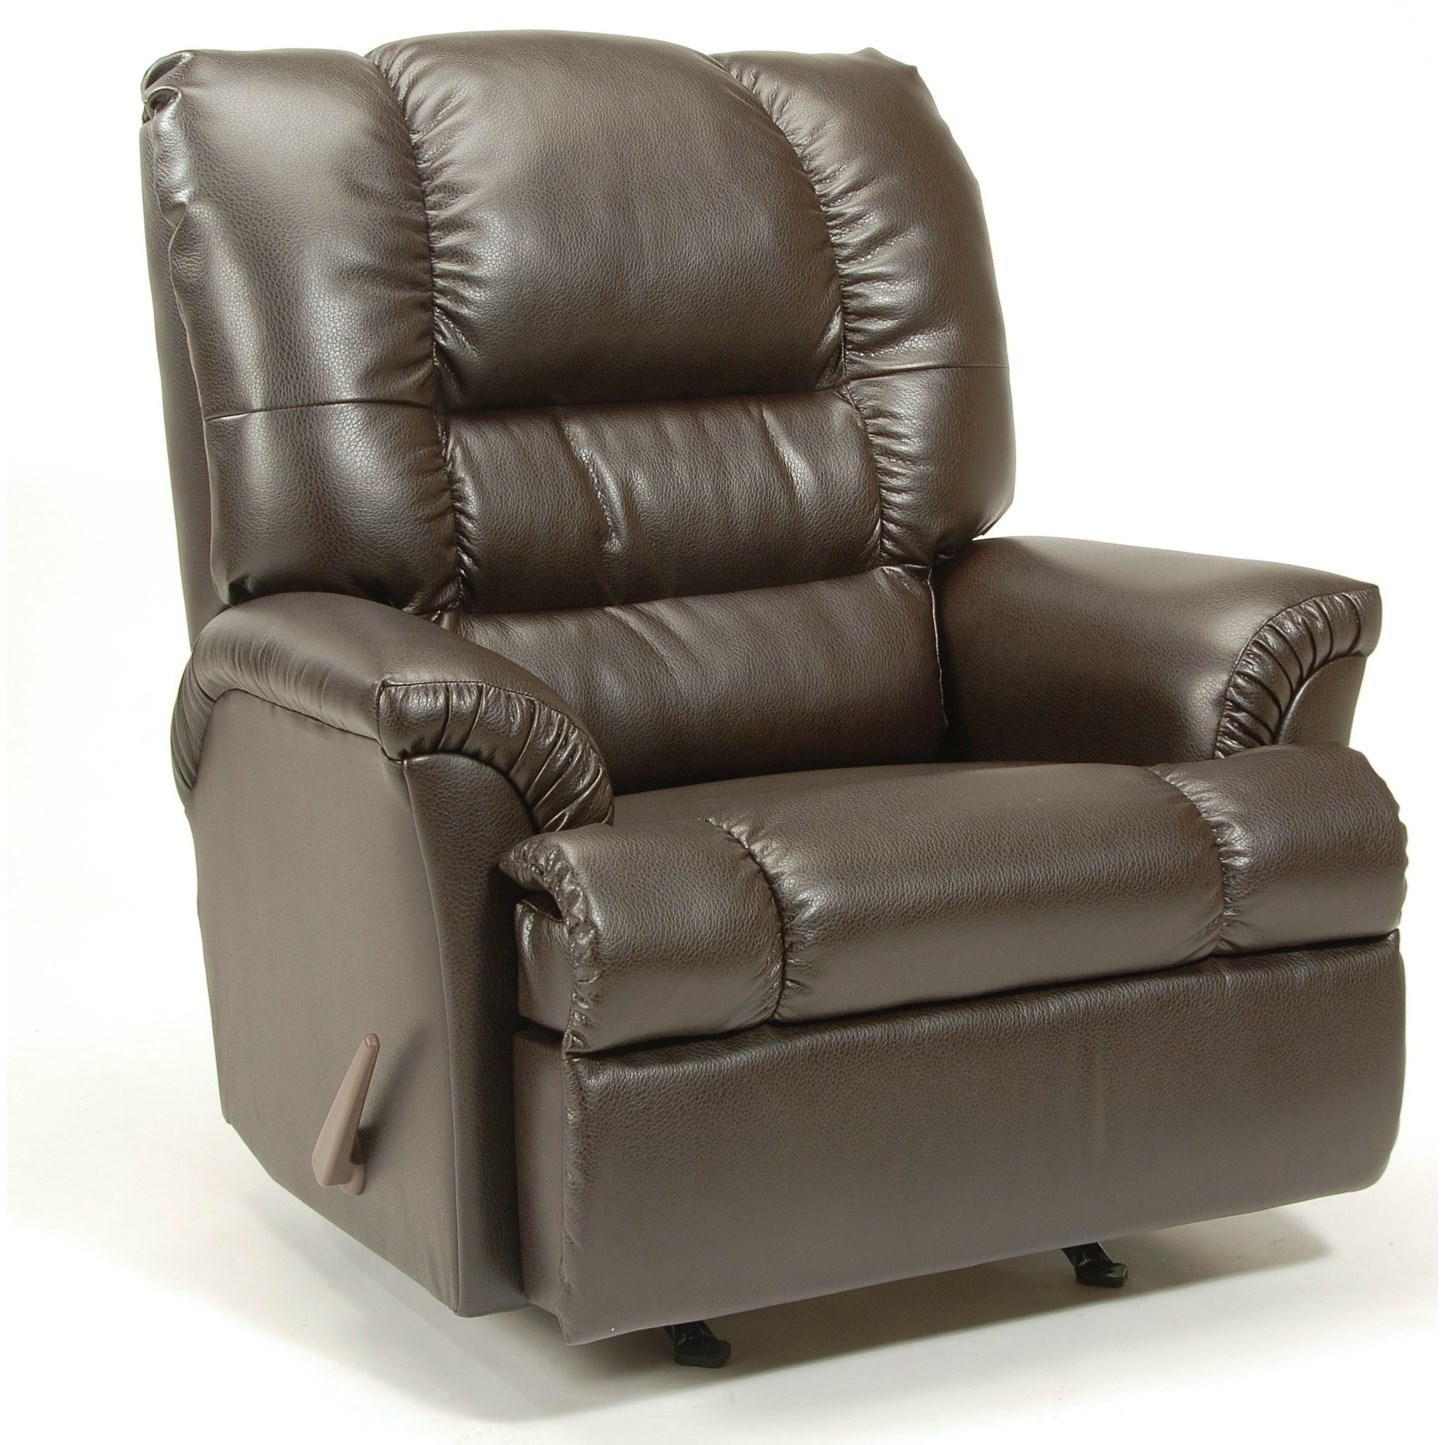 500 Recliner Recliner by Serta Upholstery by Hughes Furniture at Rooms for Less